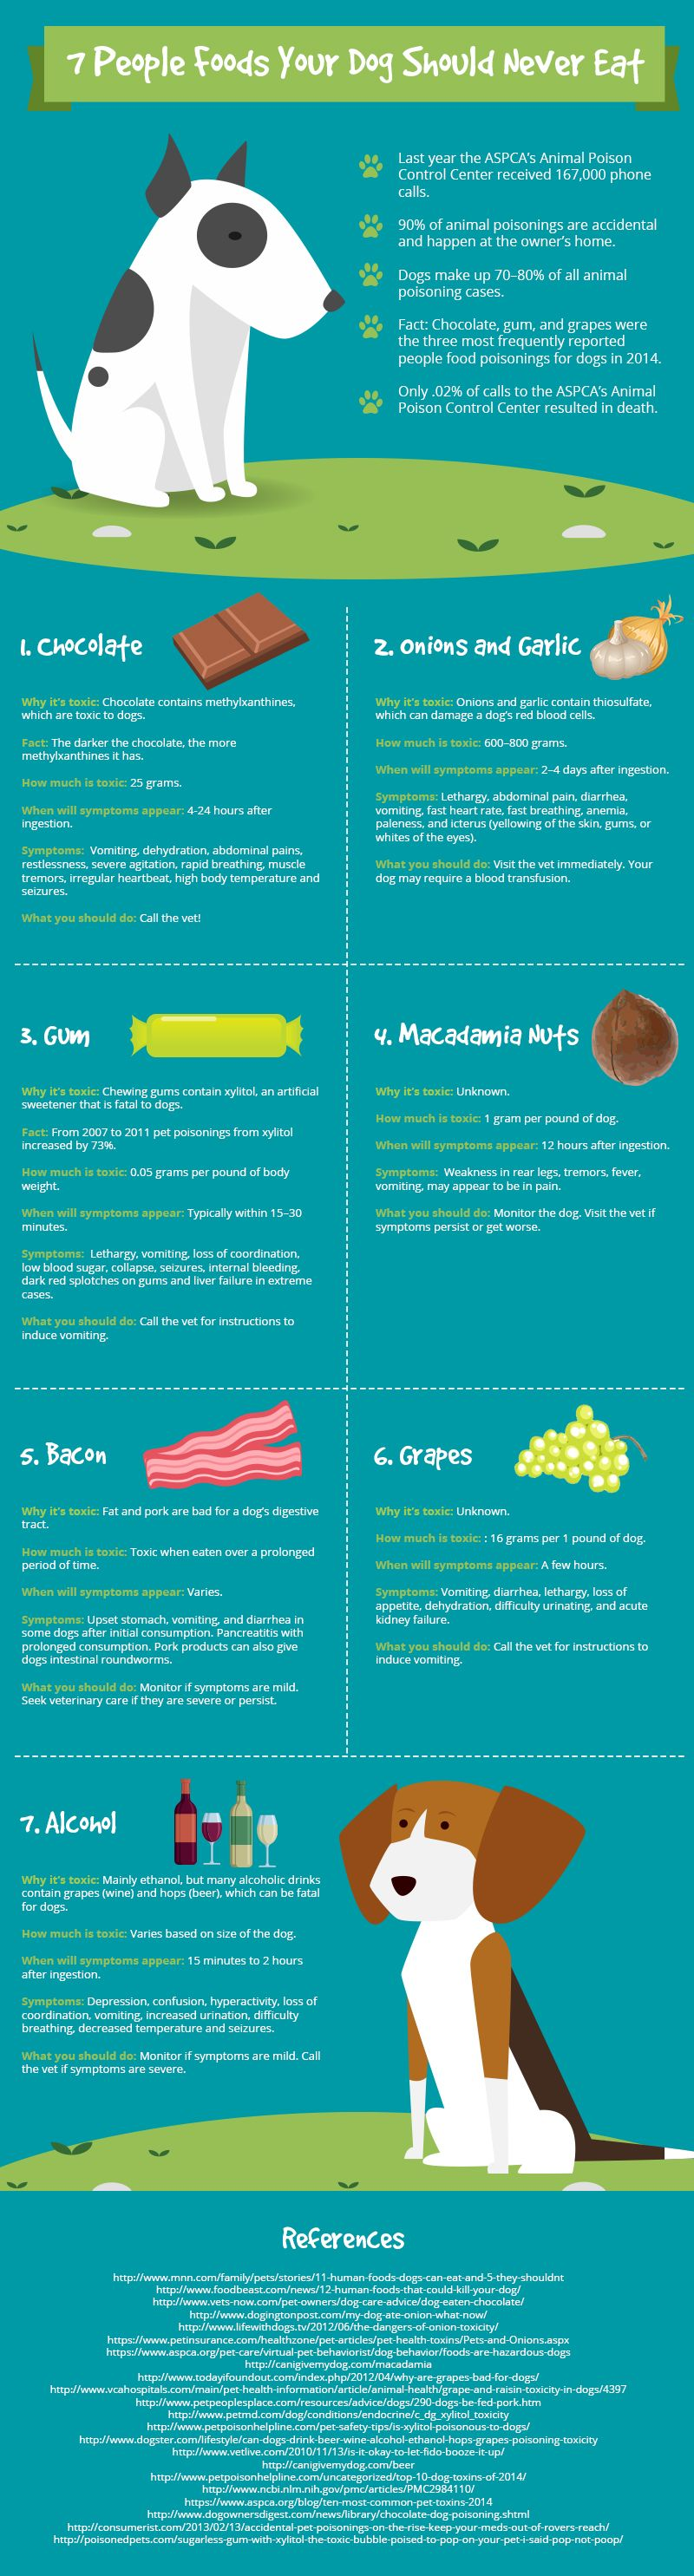 7 People Foods Your Dog Should Never Eat Infographic Your Dog What Cats Can Eat Animal Infographic